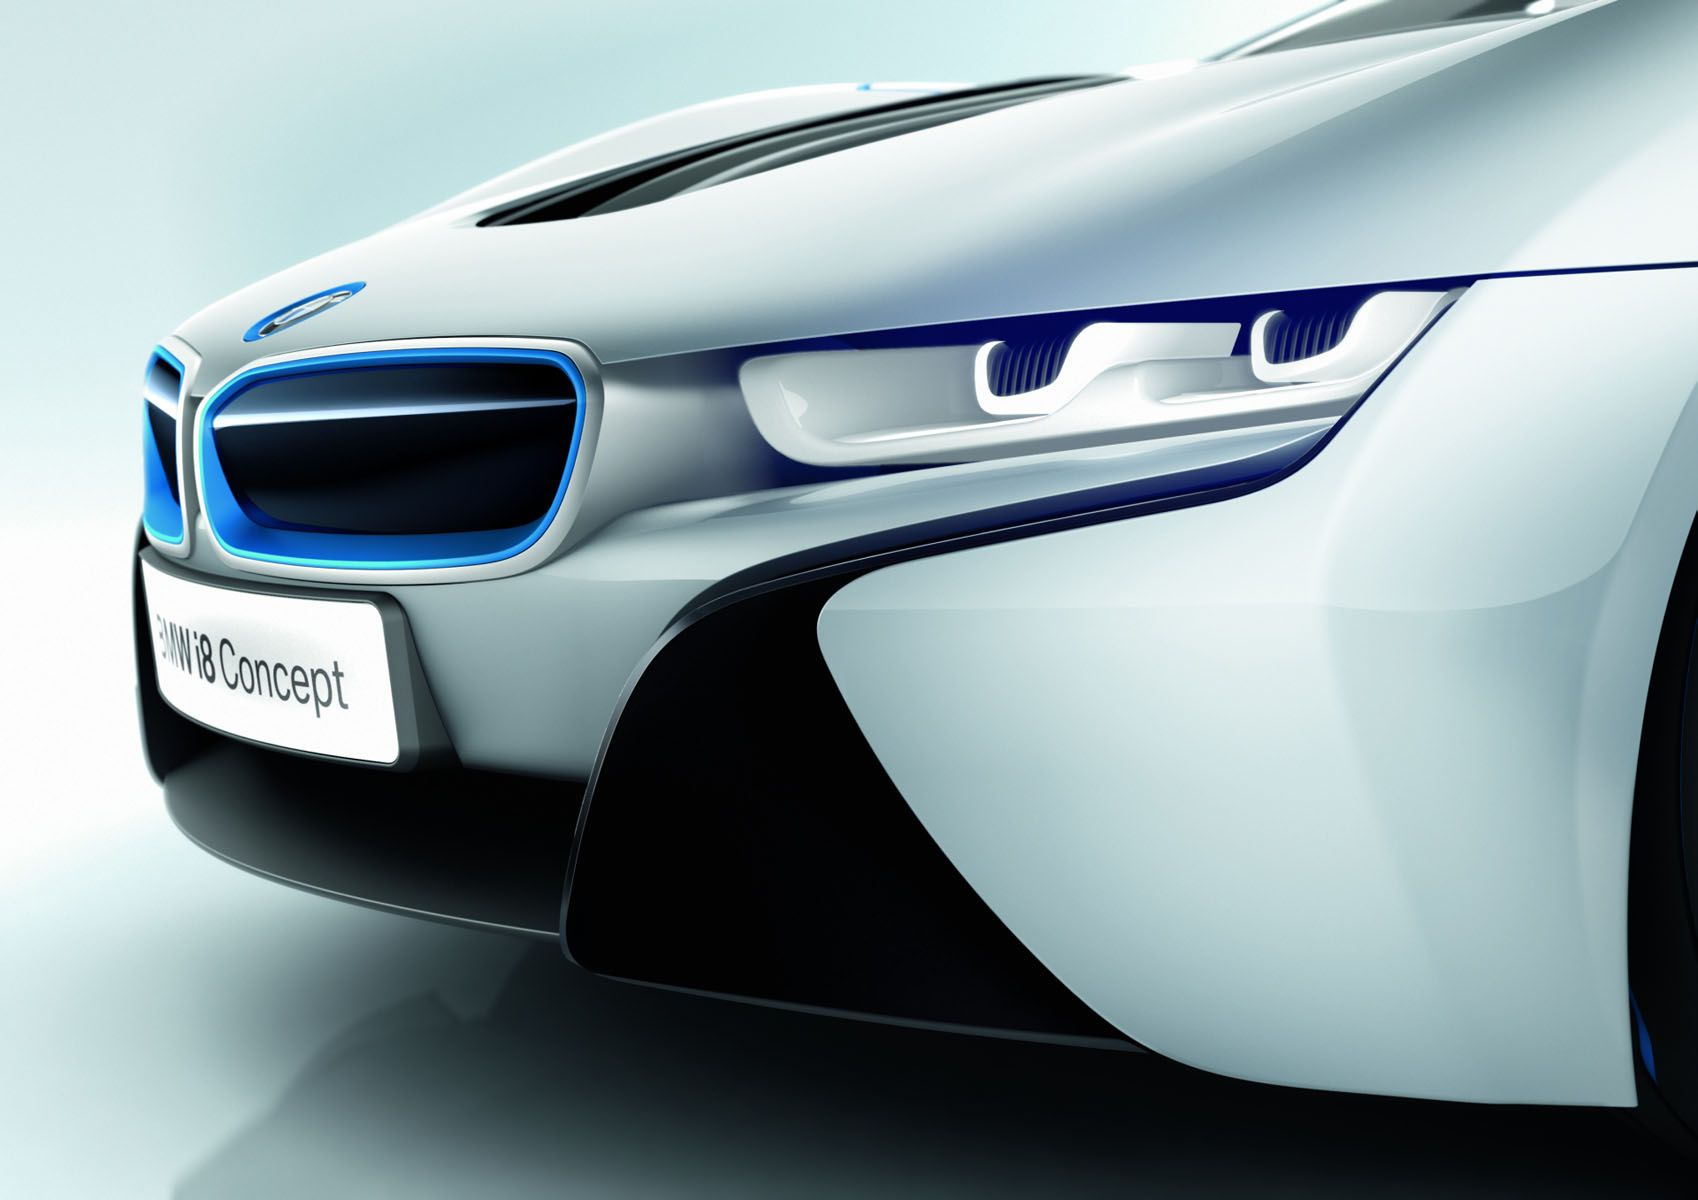 2014 BMW i8 Concept Front Headlight Close Up